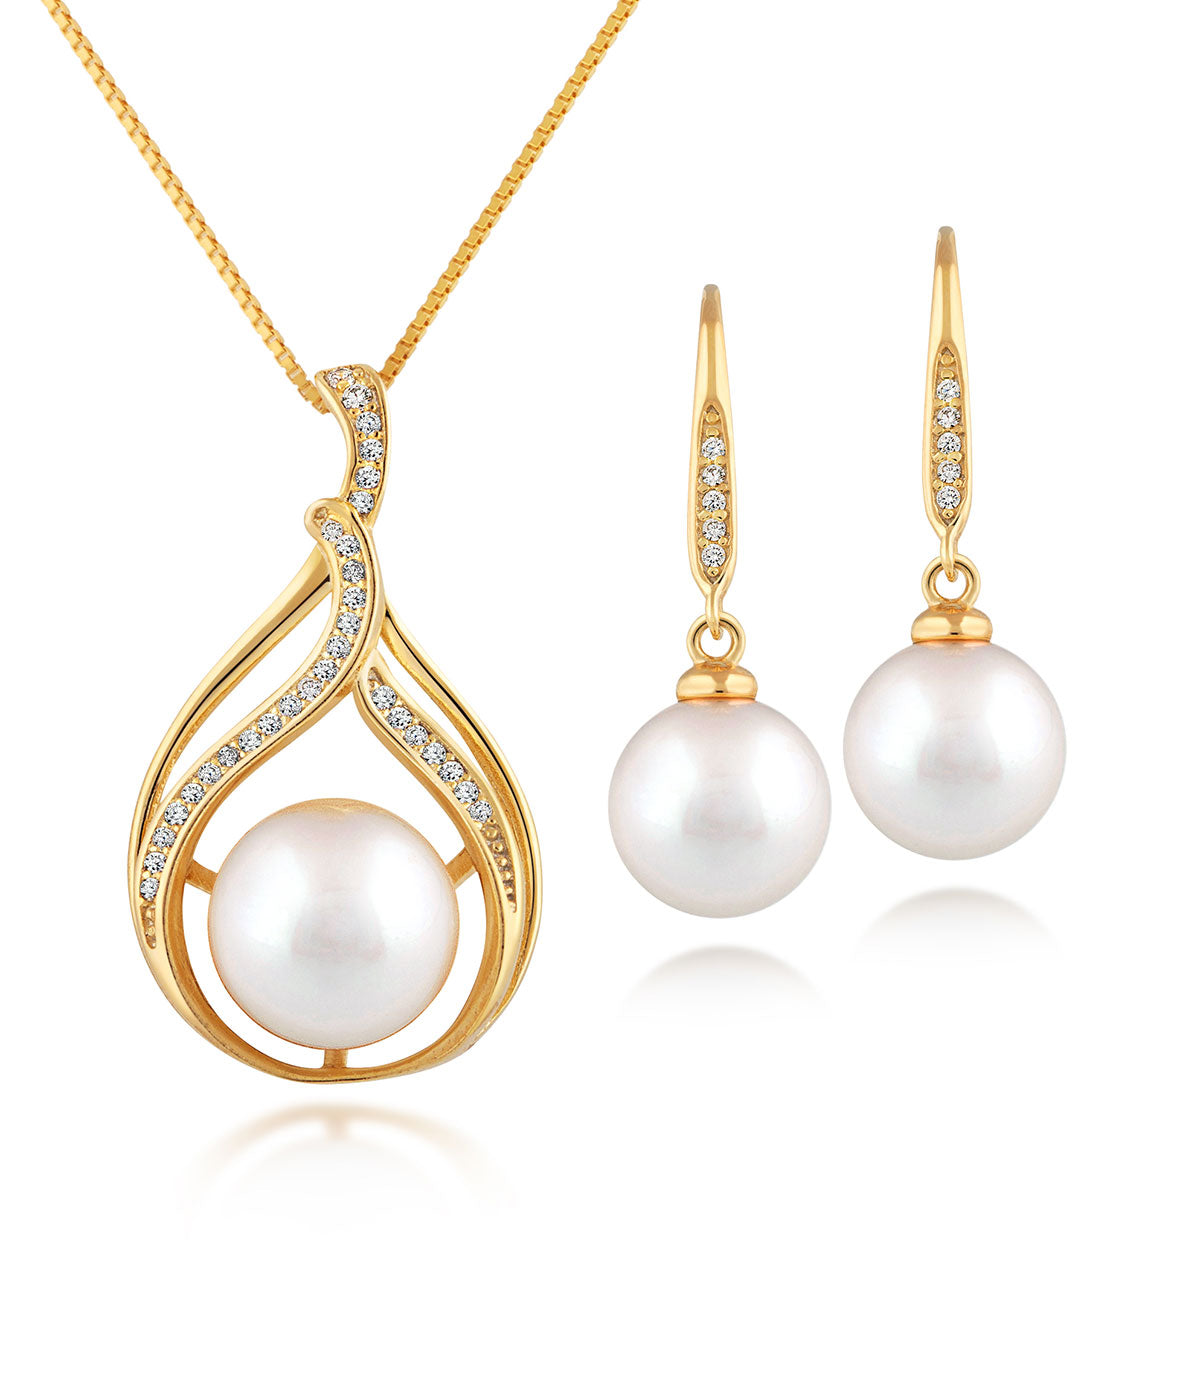 pendant gold bella and lang set pearl products necklace vermeil earrings